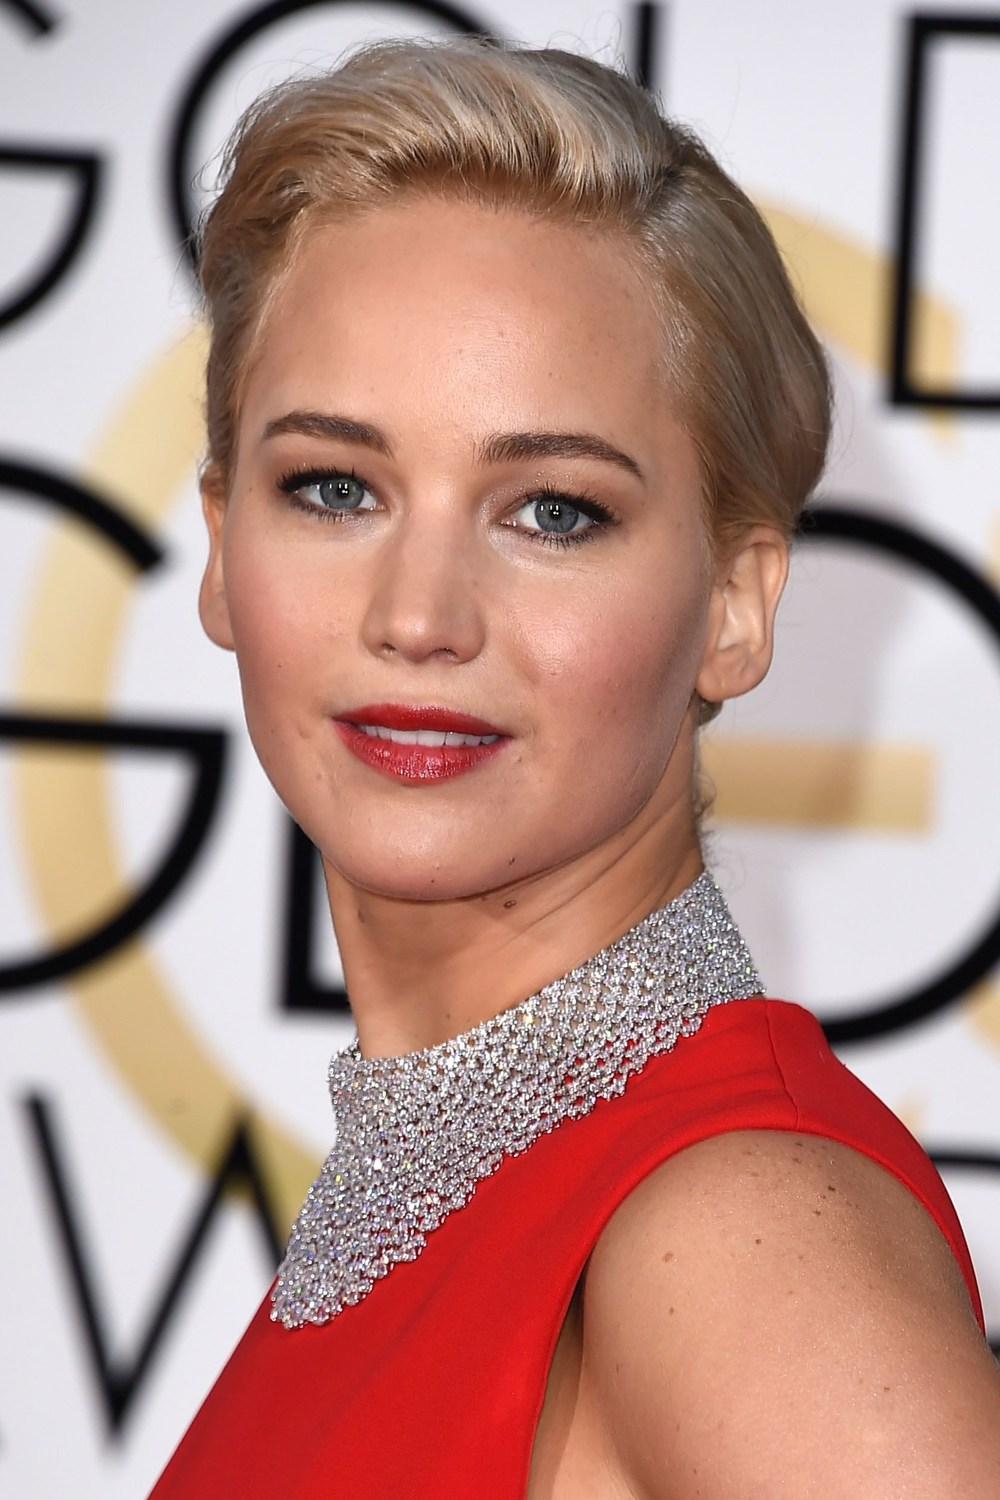 Our fave total babe,Jennifer Lawrence, wore her hair swept into a low chignon, whilst the focus of her make-up look was bold red lips to match her Dior dress.